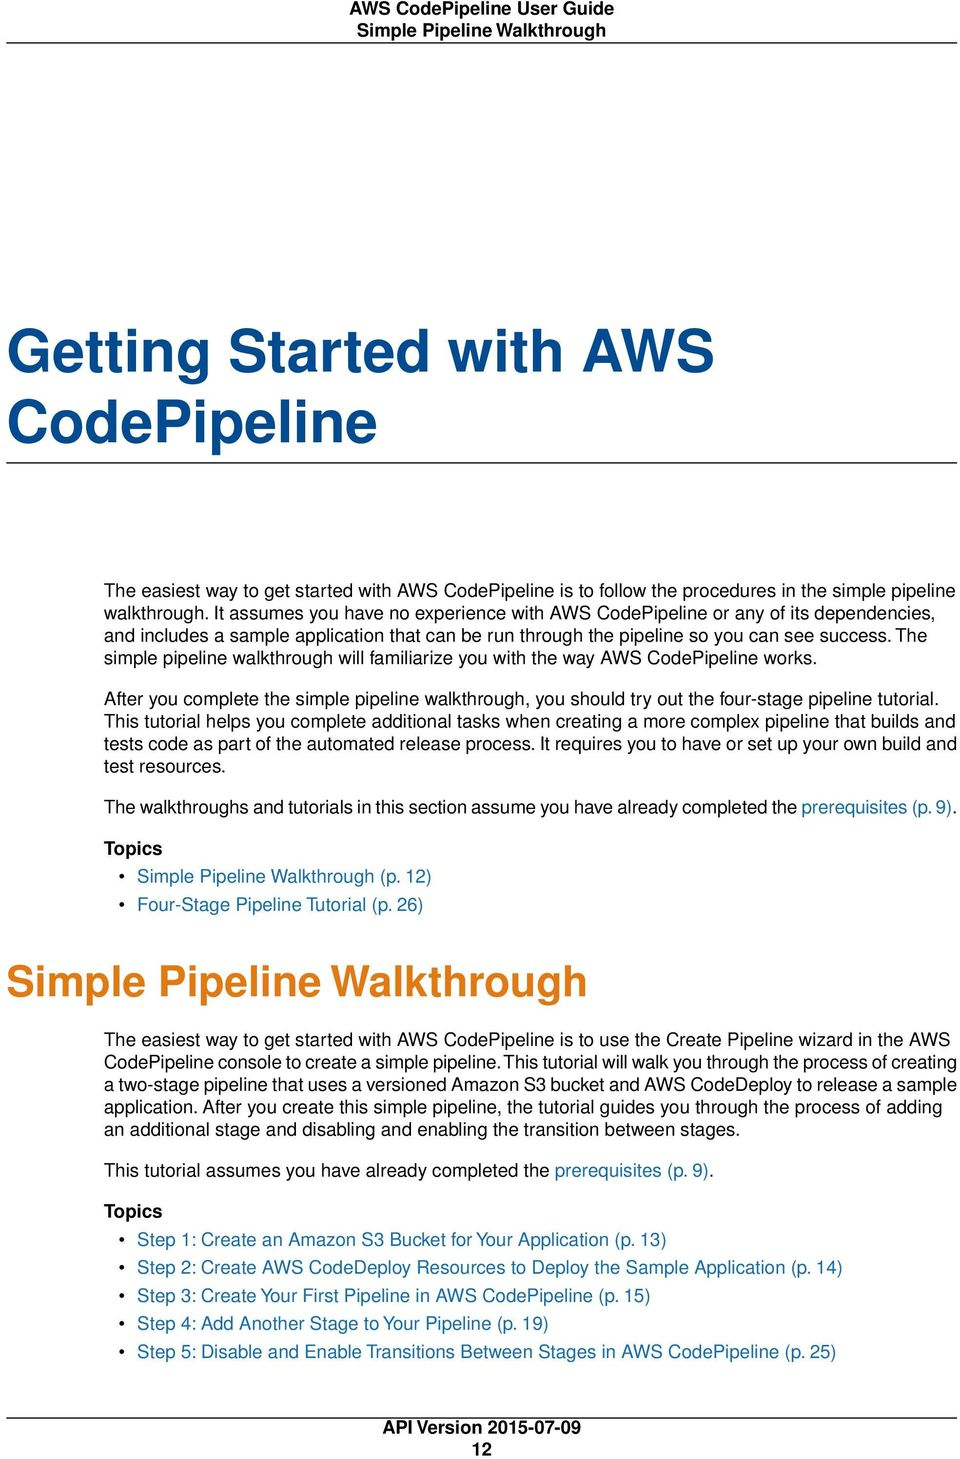 The simple pipeline walkthrough will familiarize you with the way AWS CodePipeline works. After you complete the simple pipeline walkthrough, you should try out the four-stage pipeline tutorial.